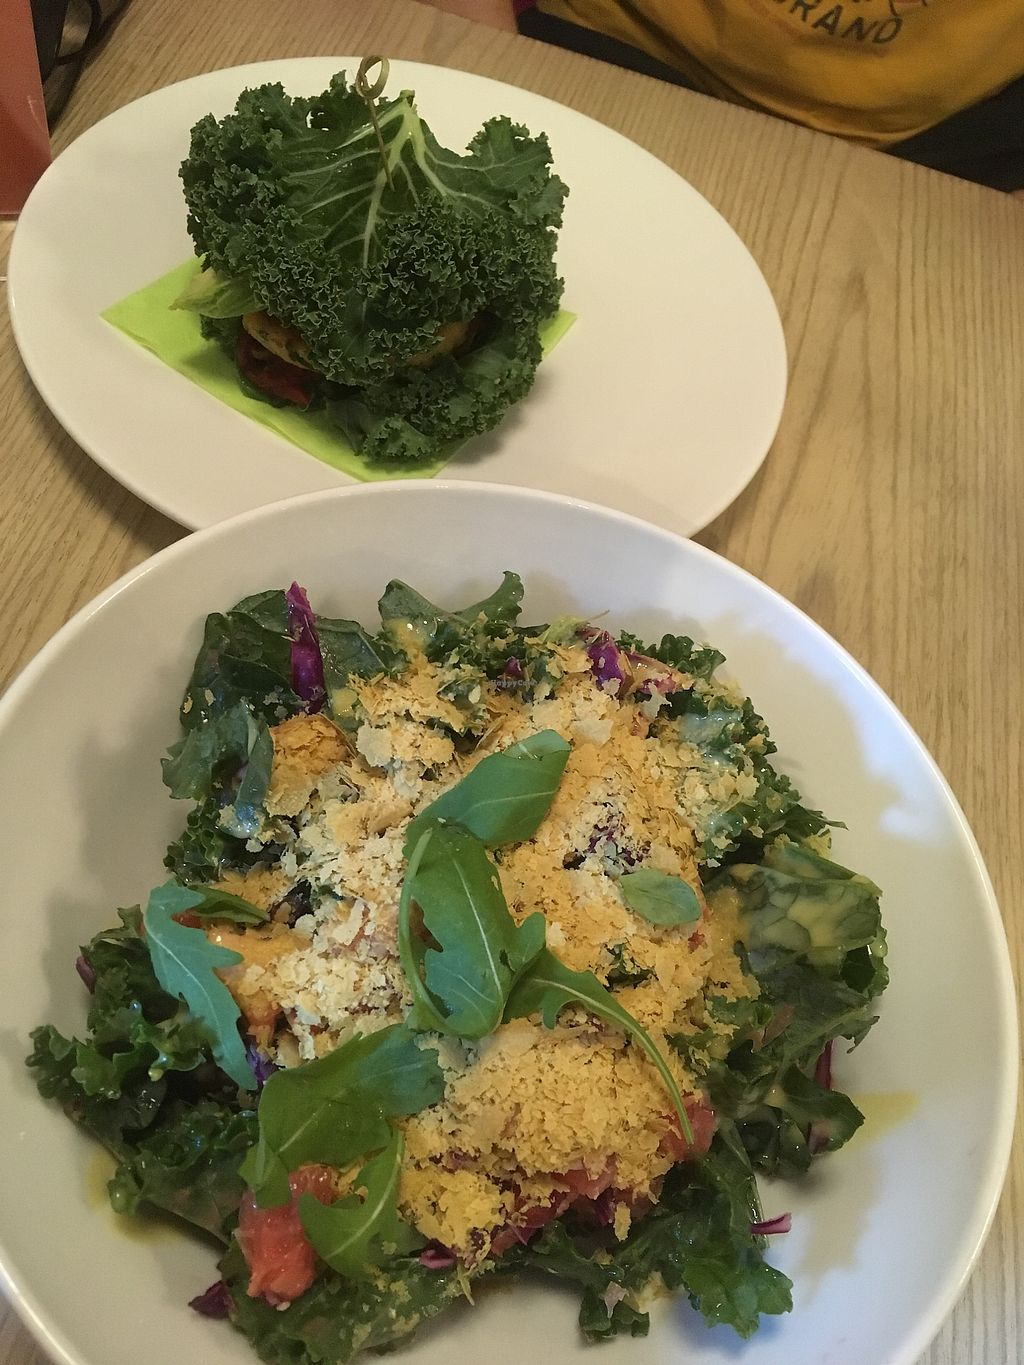 """Photo of The Beginnings - Skolas  by <a href=""""/members/profile/SuzyJones"""">SuzyJones</a> <br/>burger in leaves, kale and grapefruit  <br/> August 12, 2017  - <a href='/contact/abuse/image/27538/291931'>Report</a>"""